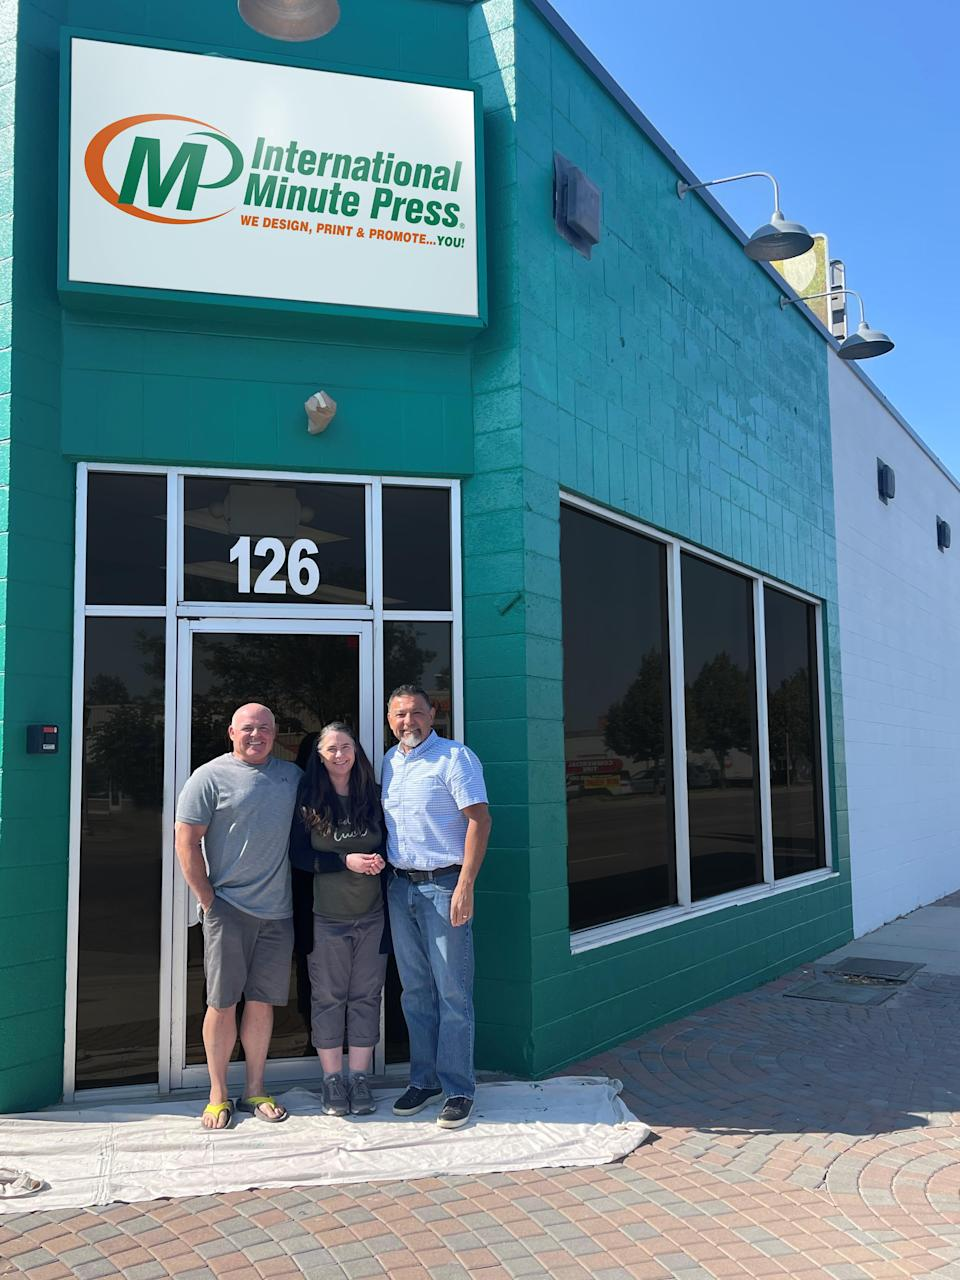 Custom Printing is now International Minute Press, Nampa, Idaho. Pictured from left to right: Mike Cutler, retiring owner of Custom Printing; and Sheryl & James Wisler, new owners of International Minute Press, Nampa.